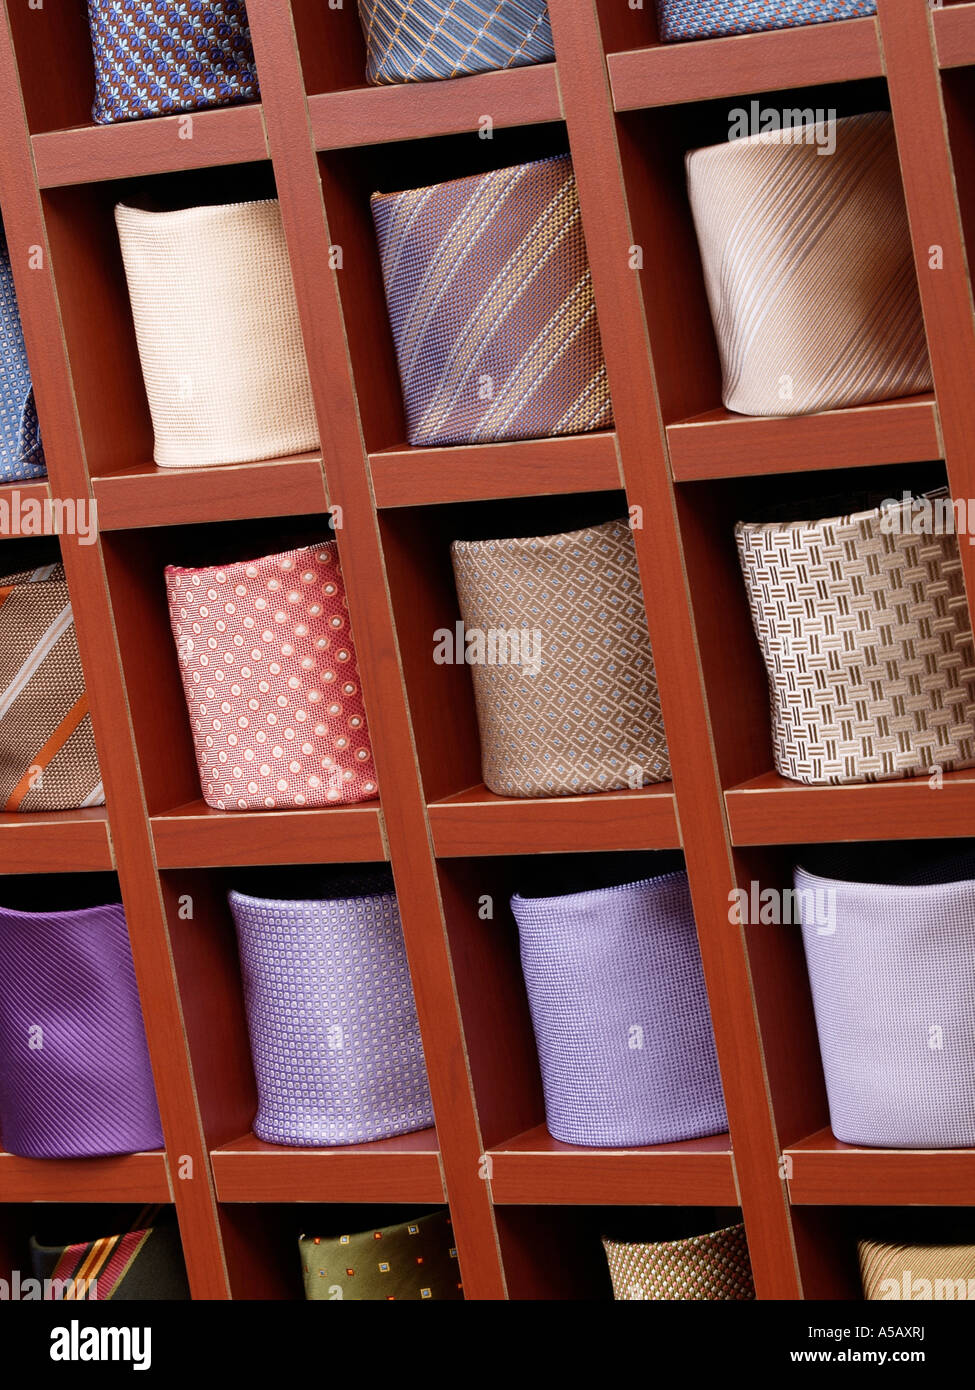 Display of ties mens fashion accessories shop rack shelves patterns colors trend suit clothes - Stock Image